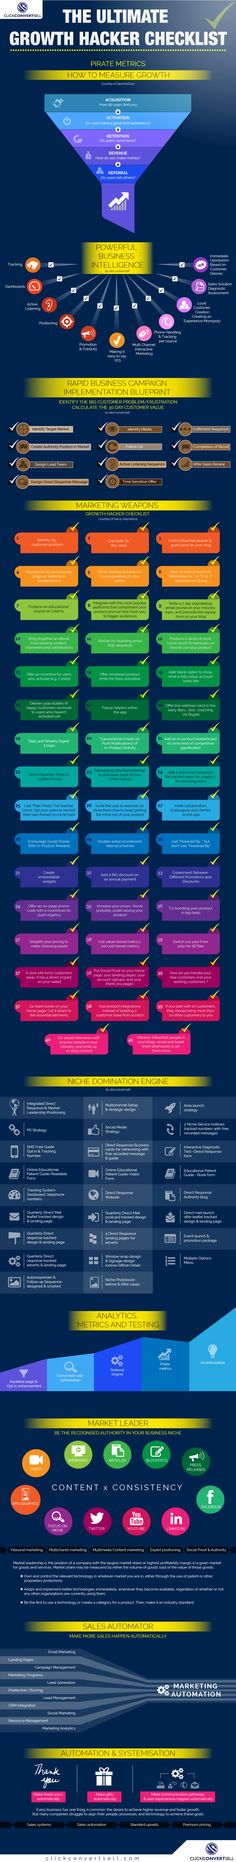 The Ultimate Growth Hacker Checklist #Infographic #infografía